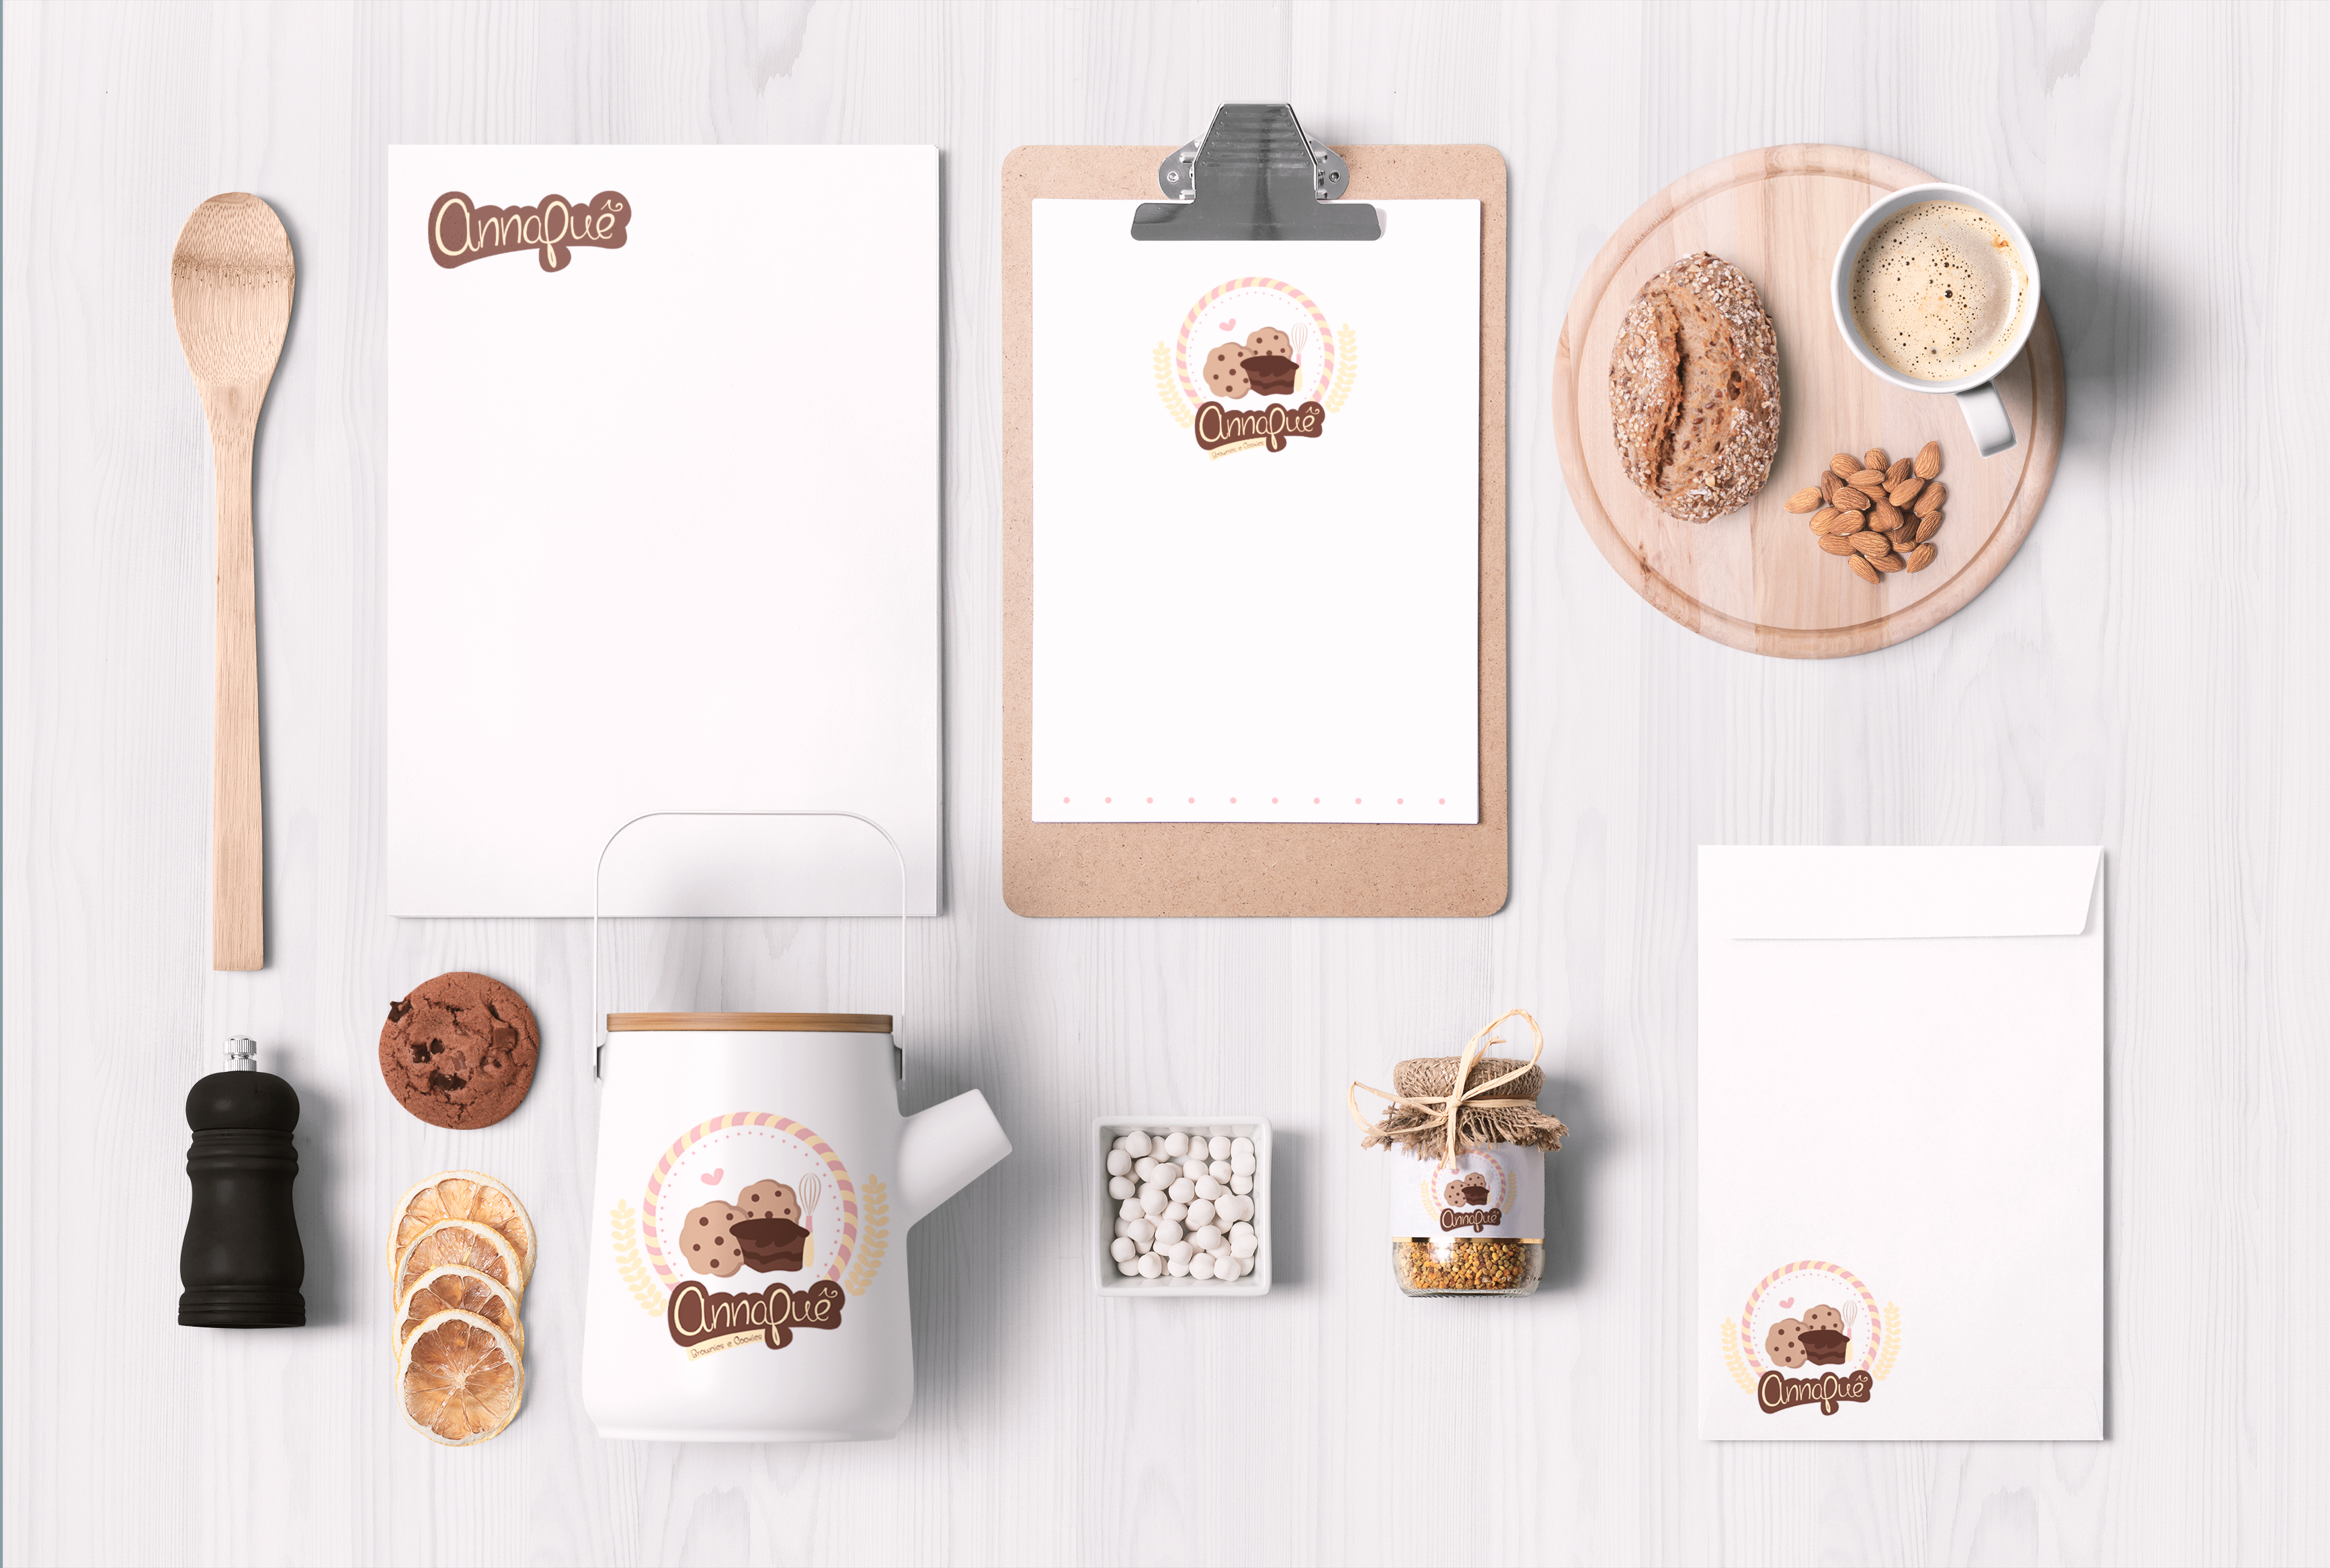 Food Packaging & Branding MockUps 01